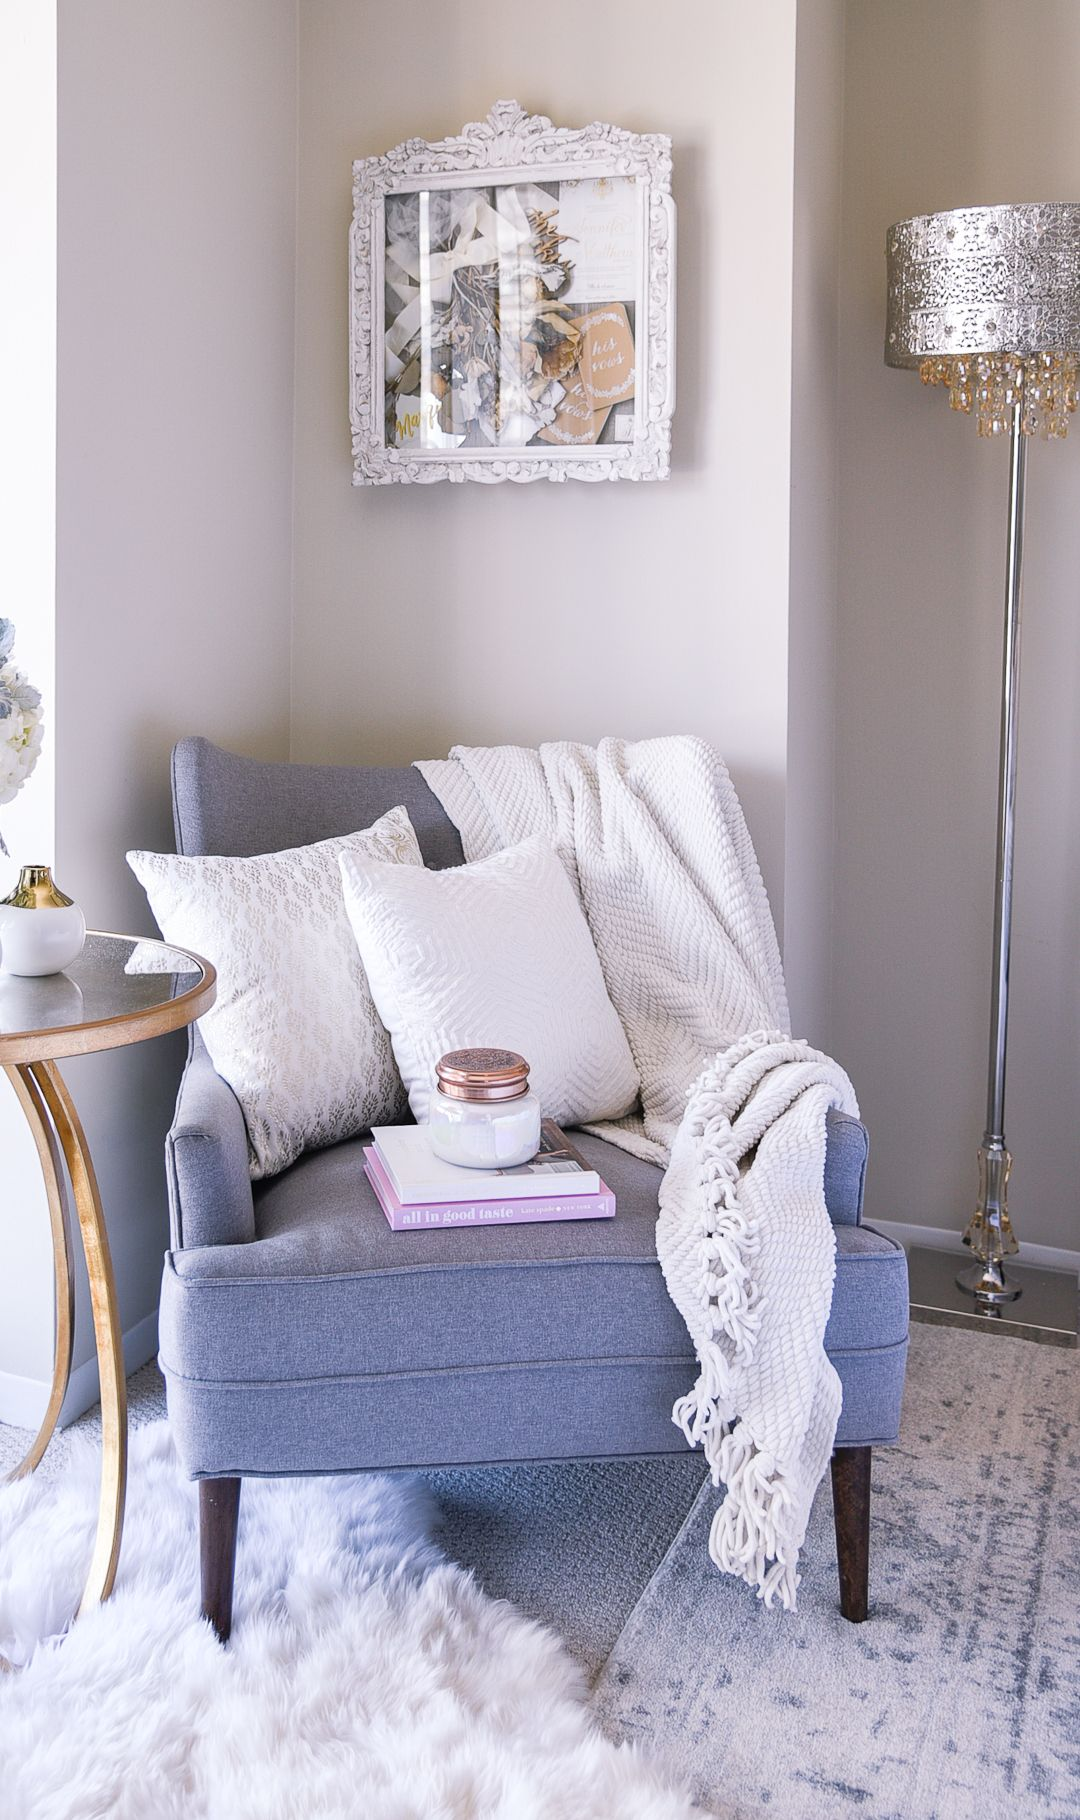 How To Style A Cozy Corner Home Decor Bedroom